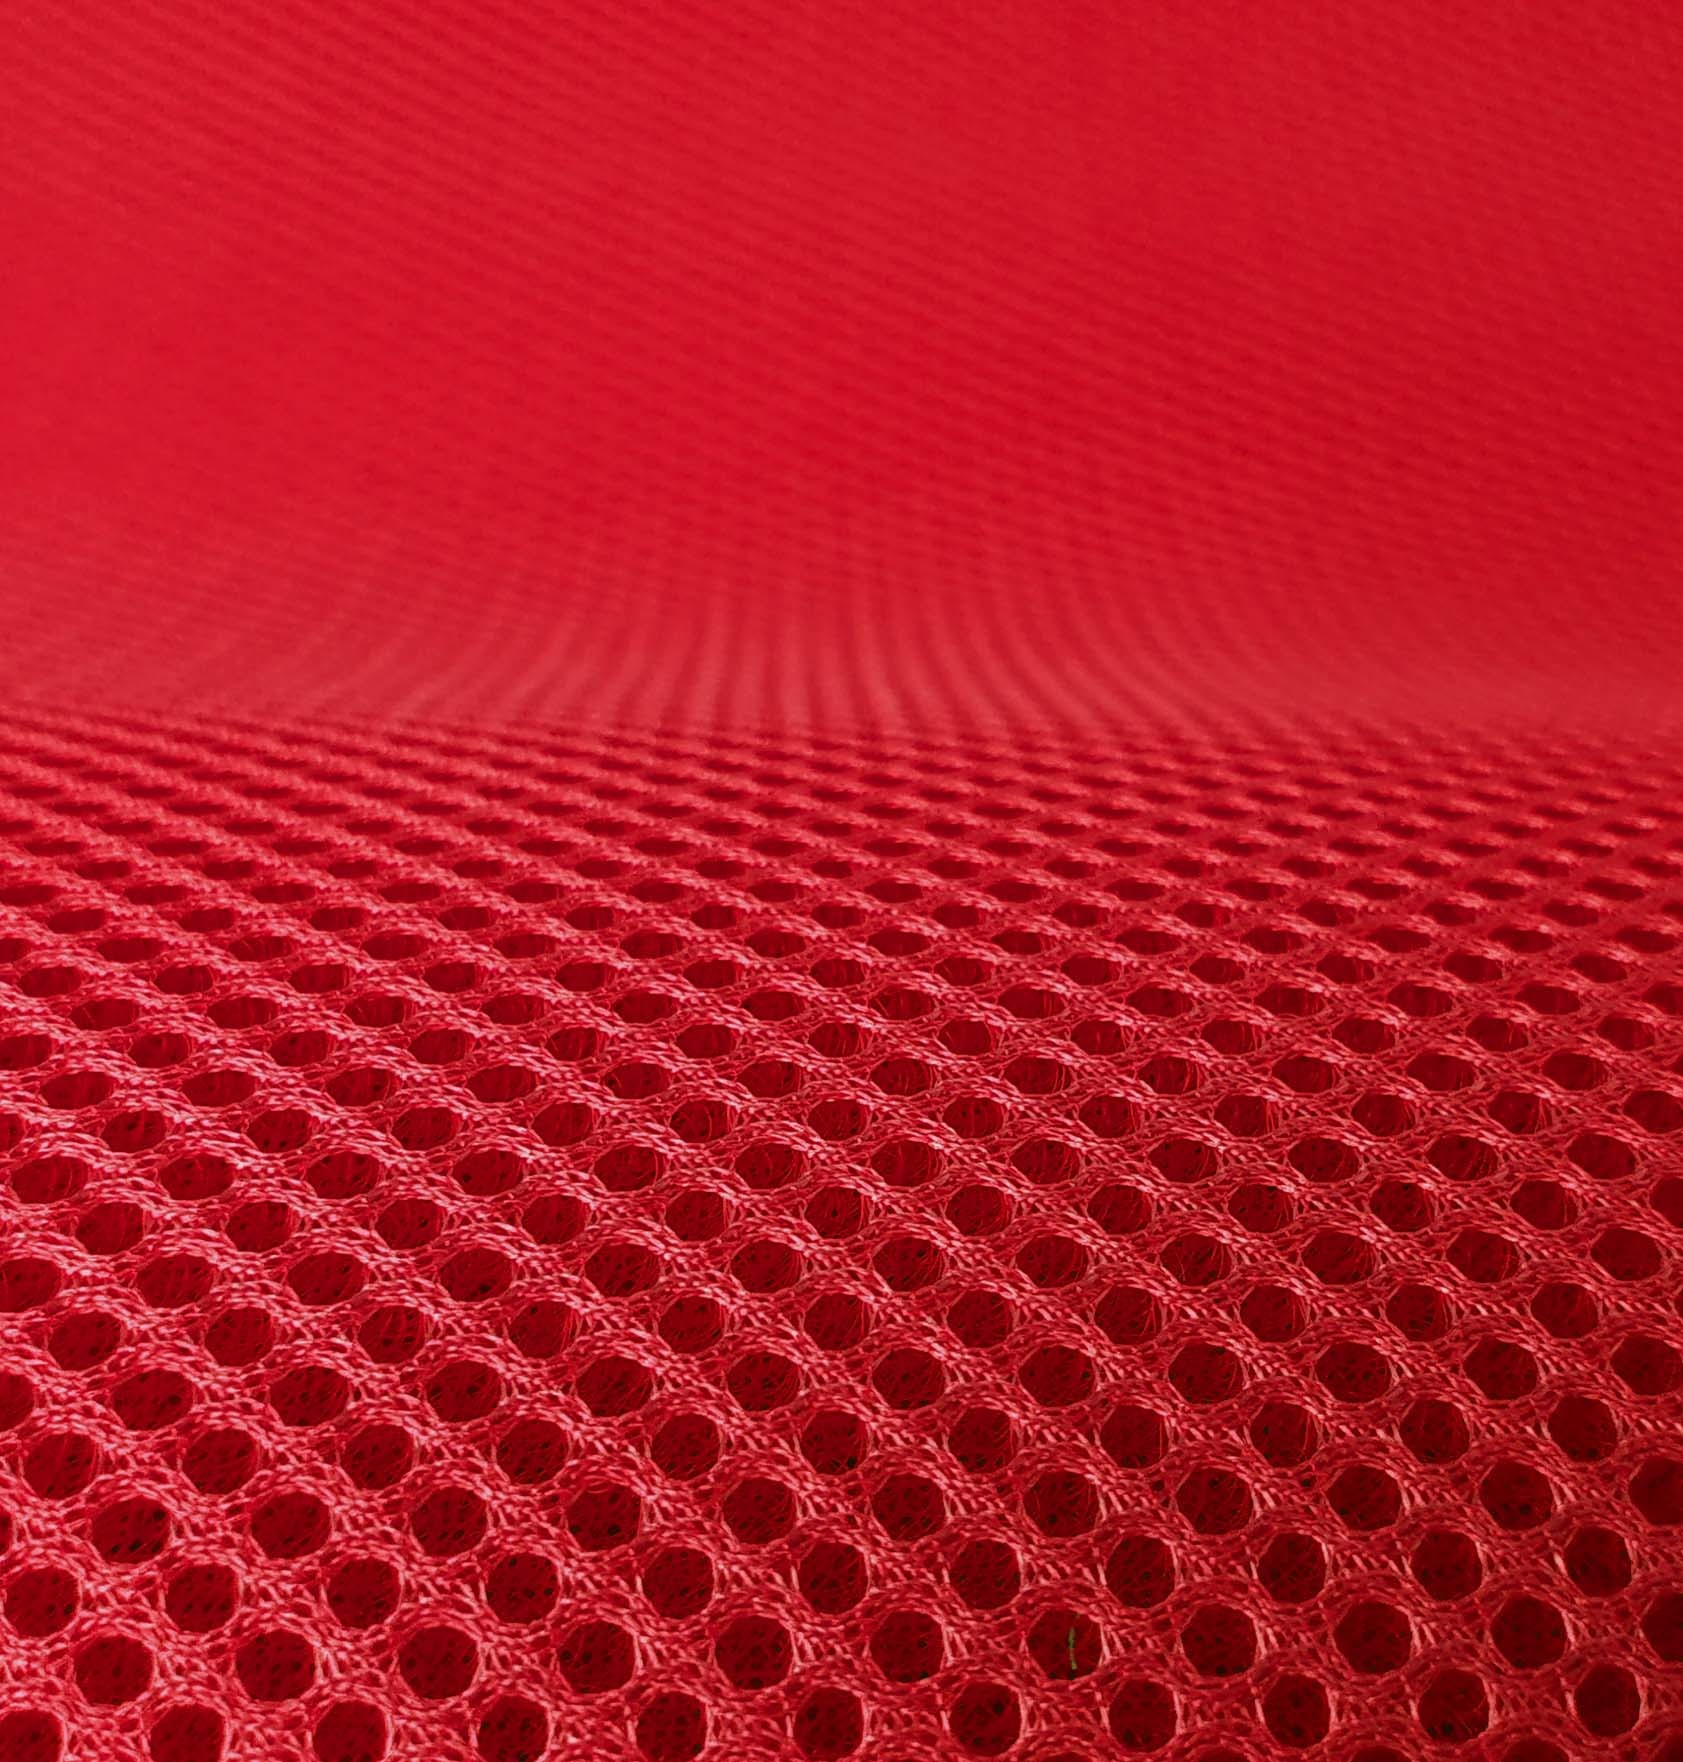 Lasagroom Air Mesh Fabric Red 4mm